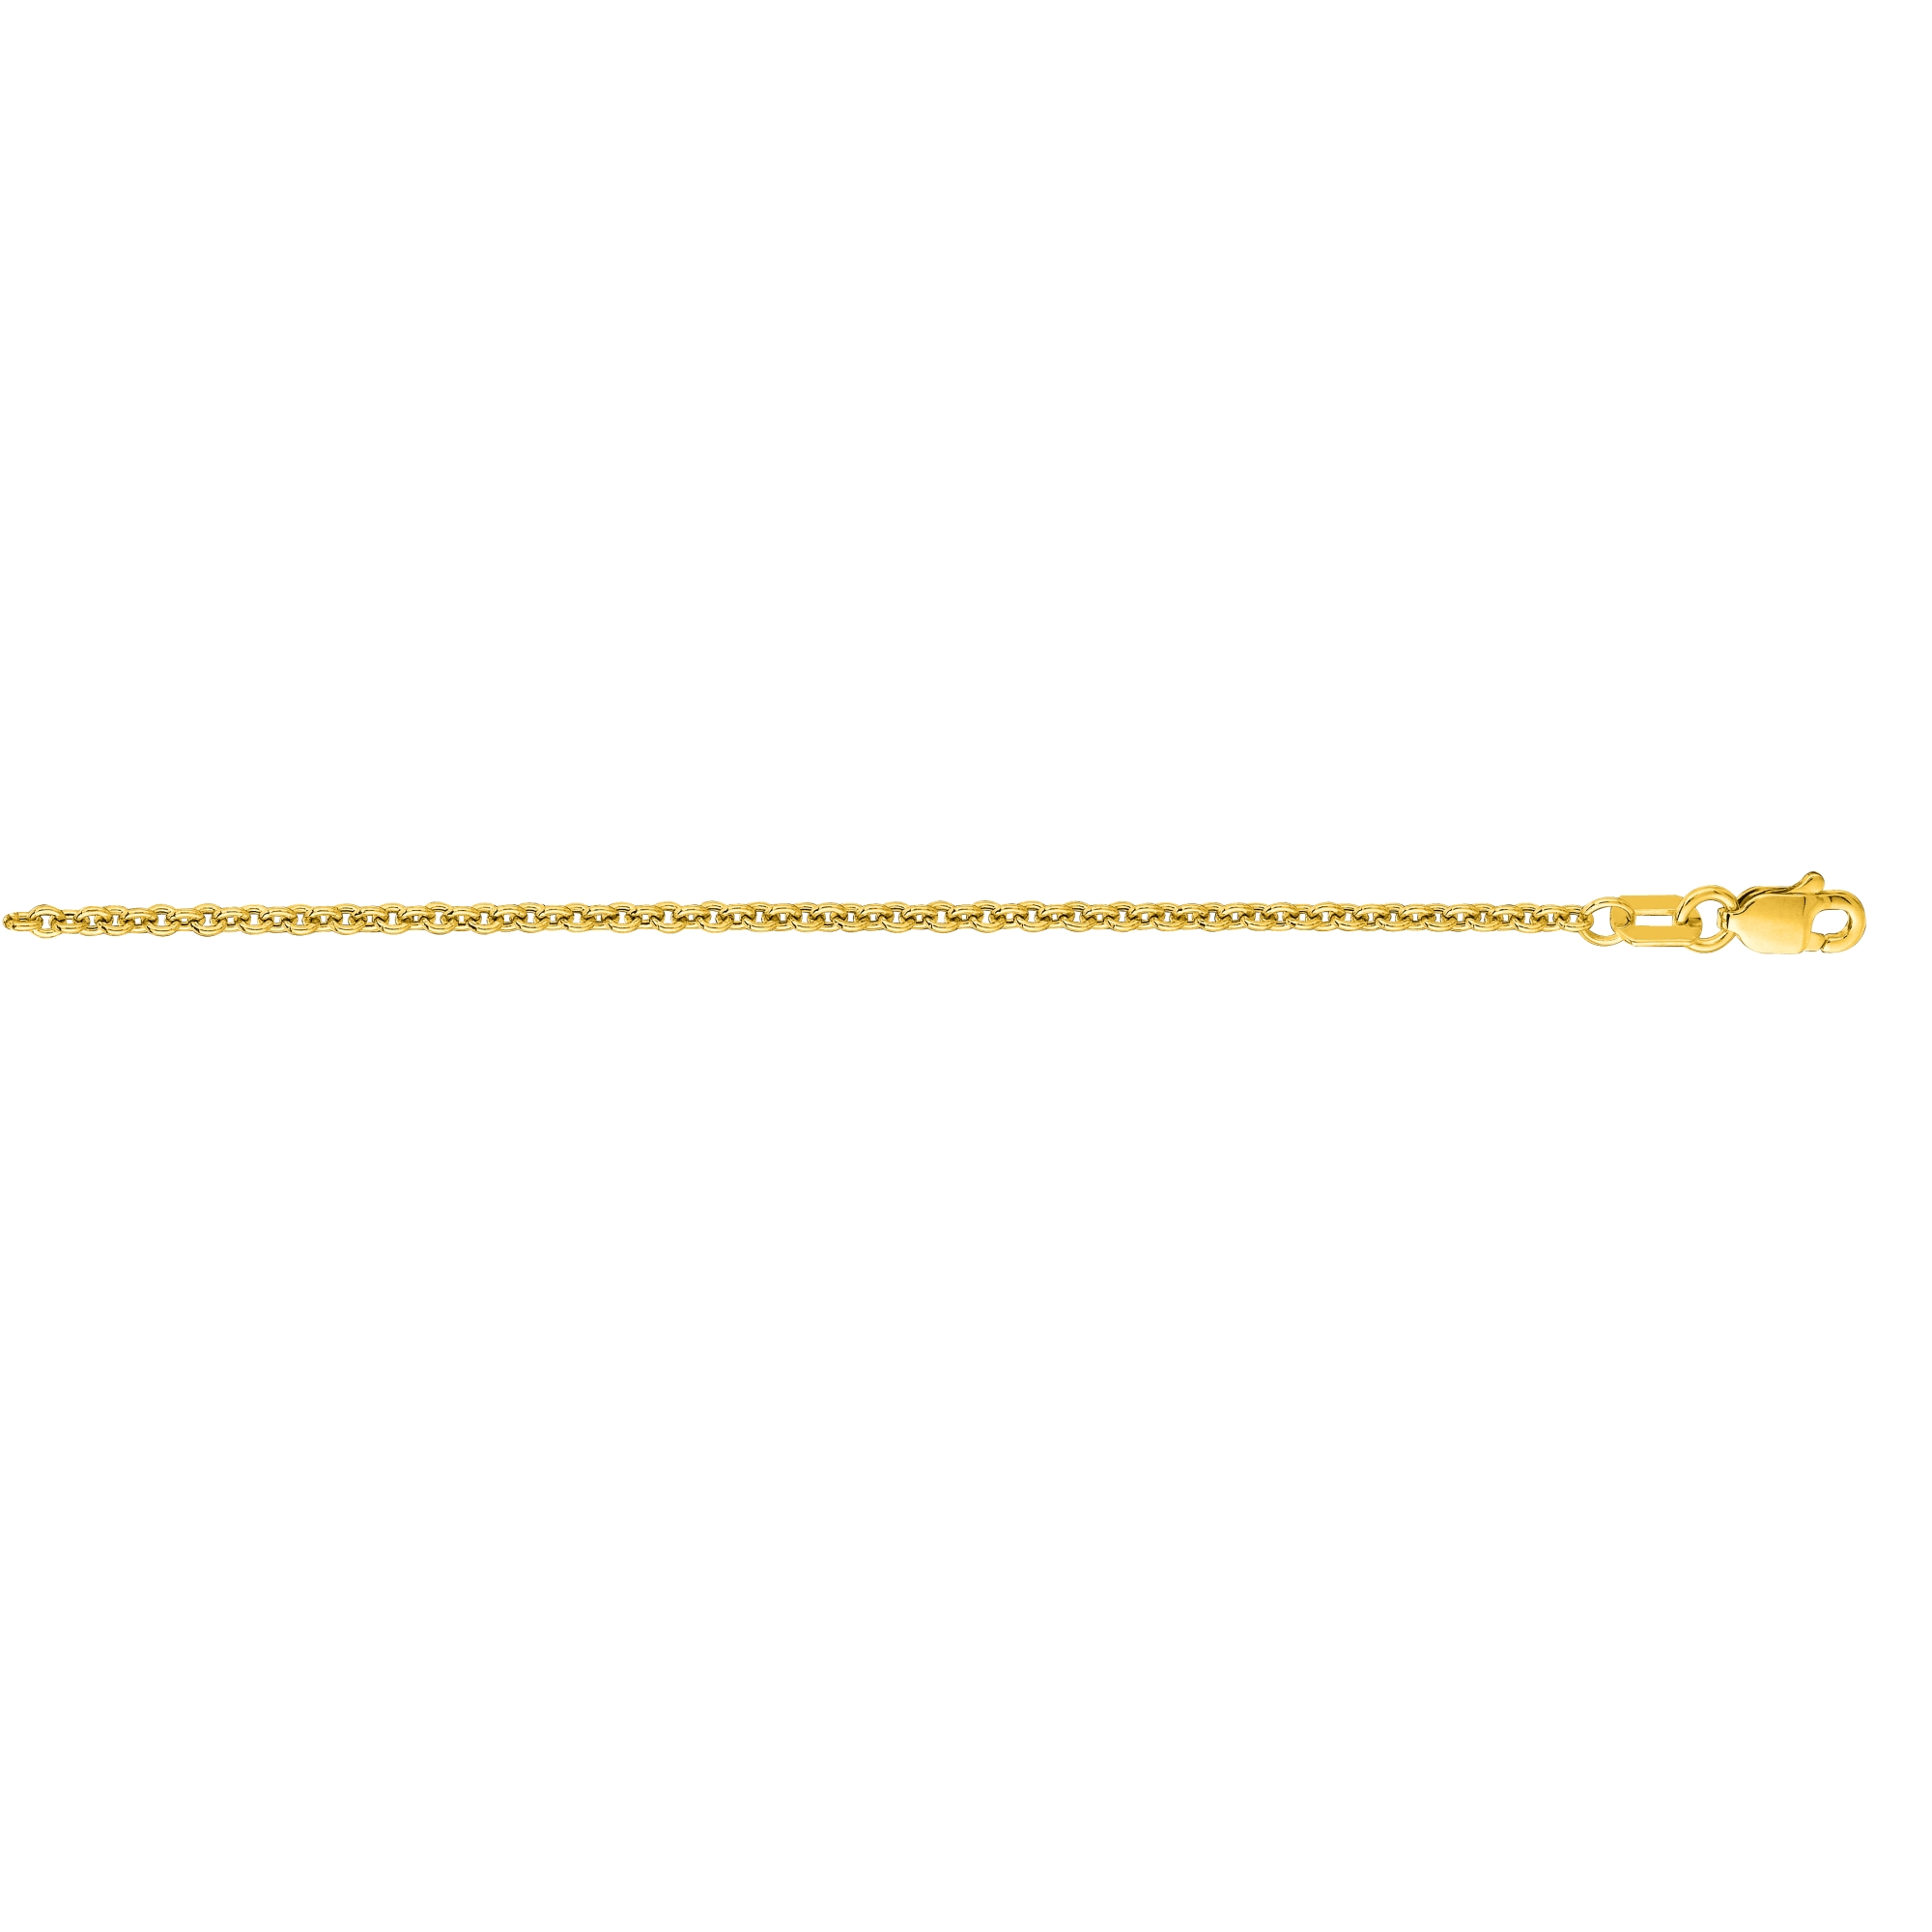 Hollow 14k Gold Forsantina Chain For Men & Women 1.9mm Wide Yellow Image